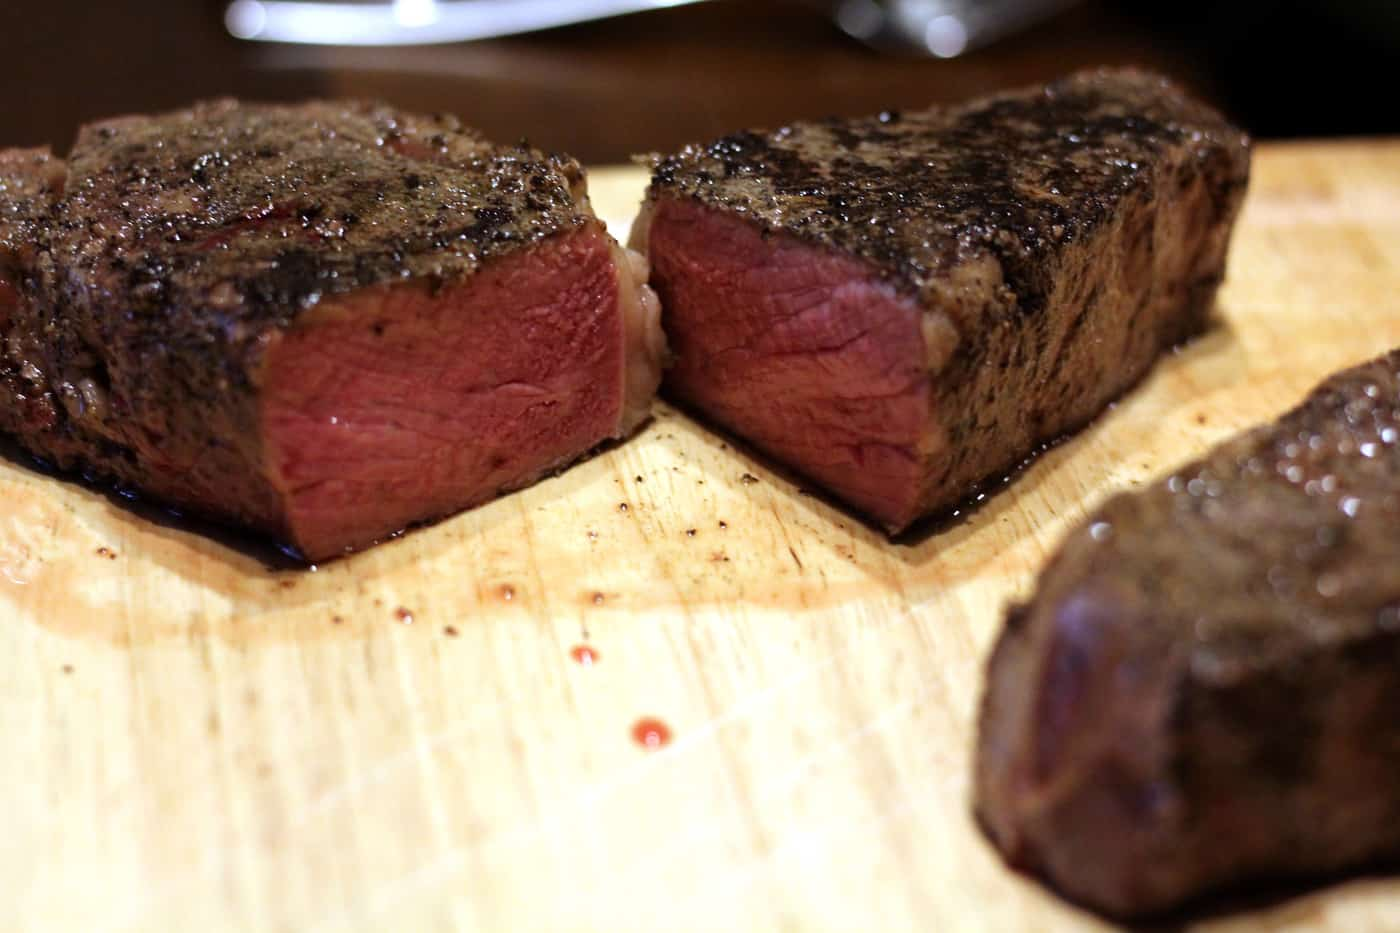 Restaurant-Worthy Steak using Sous Vide